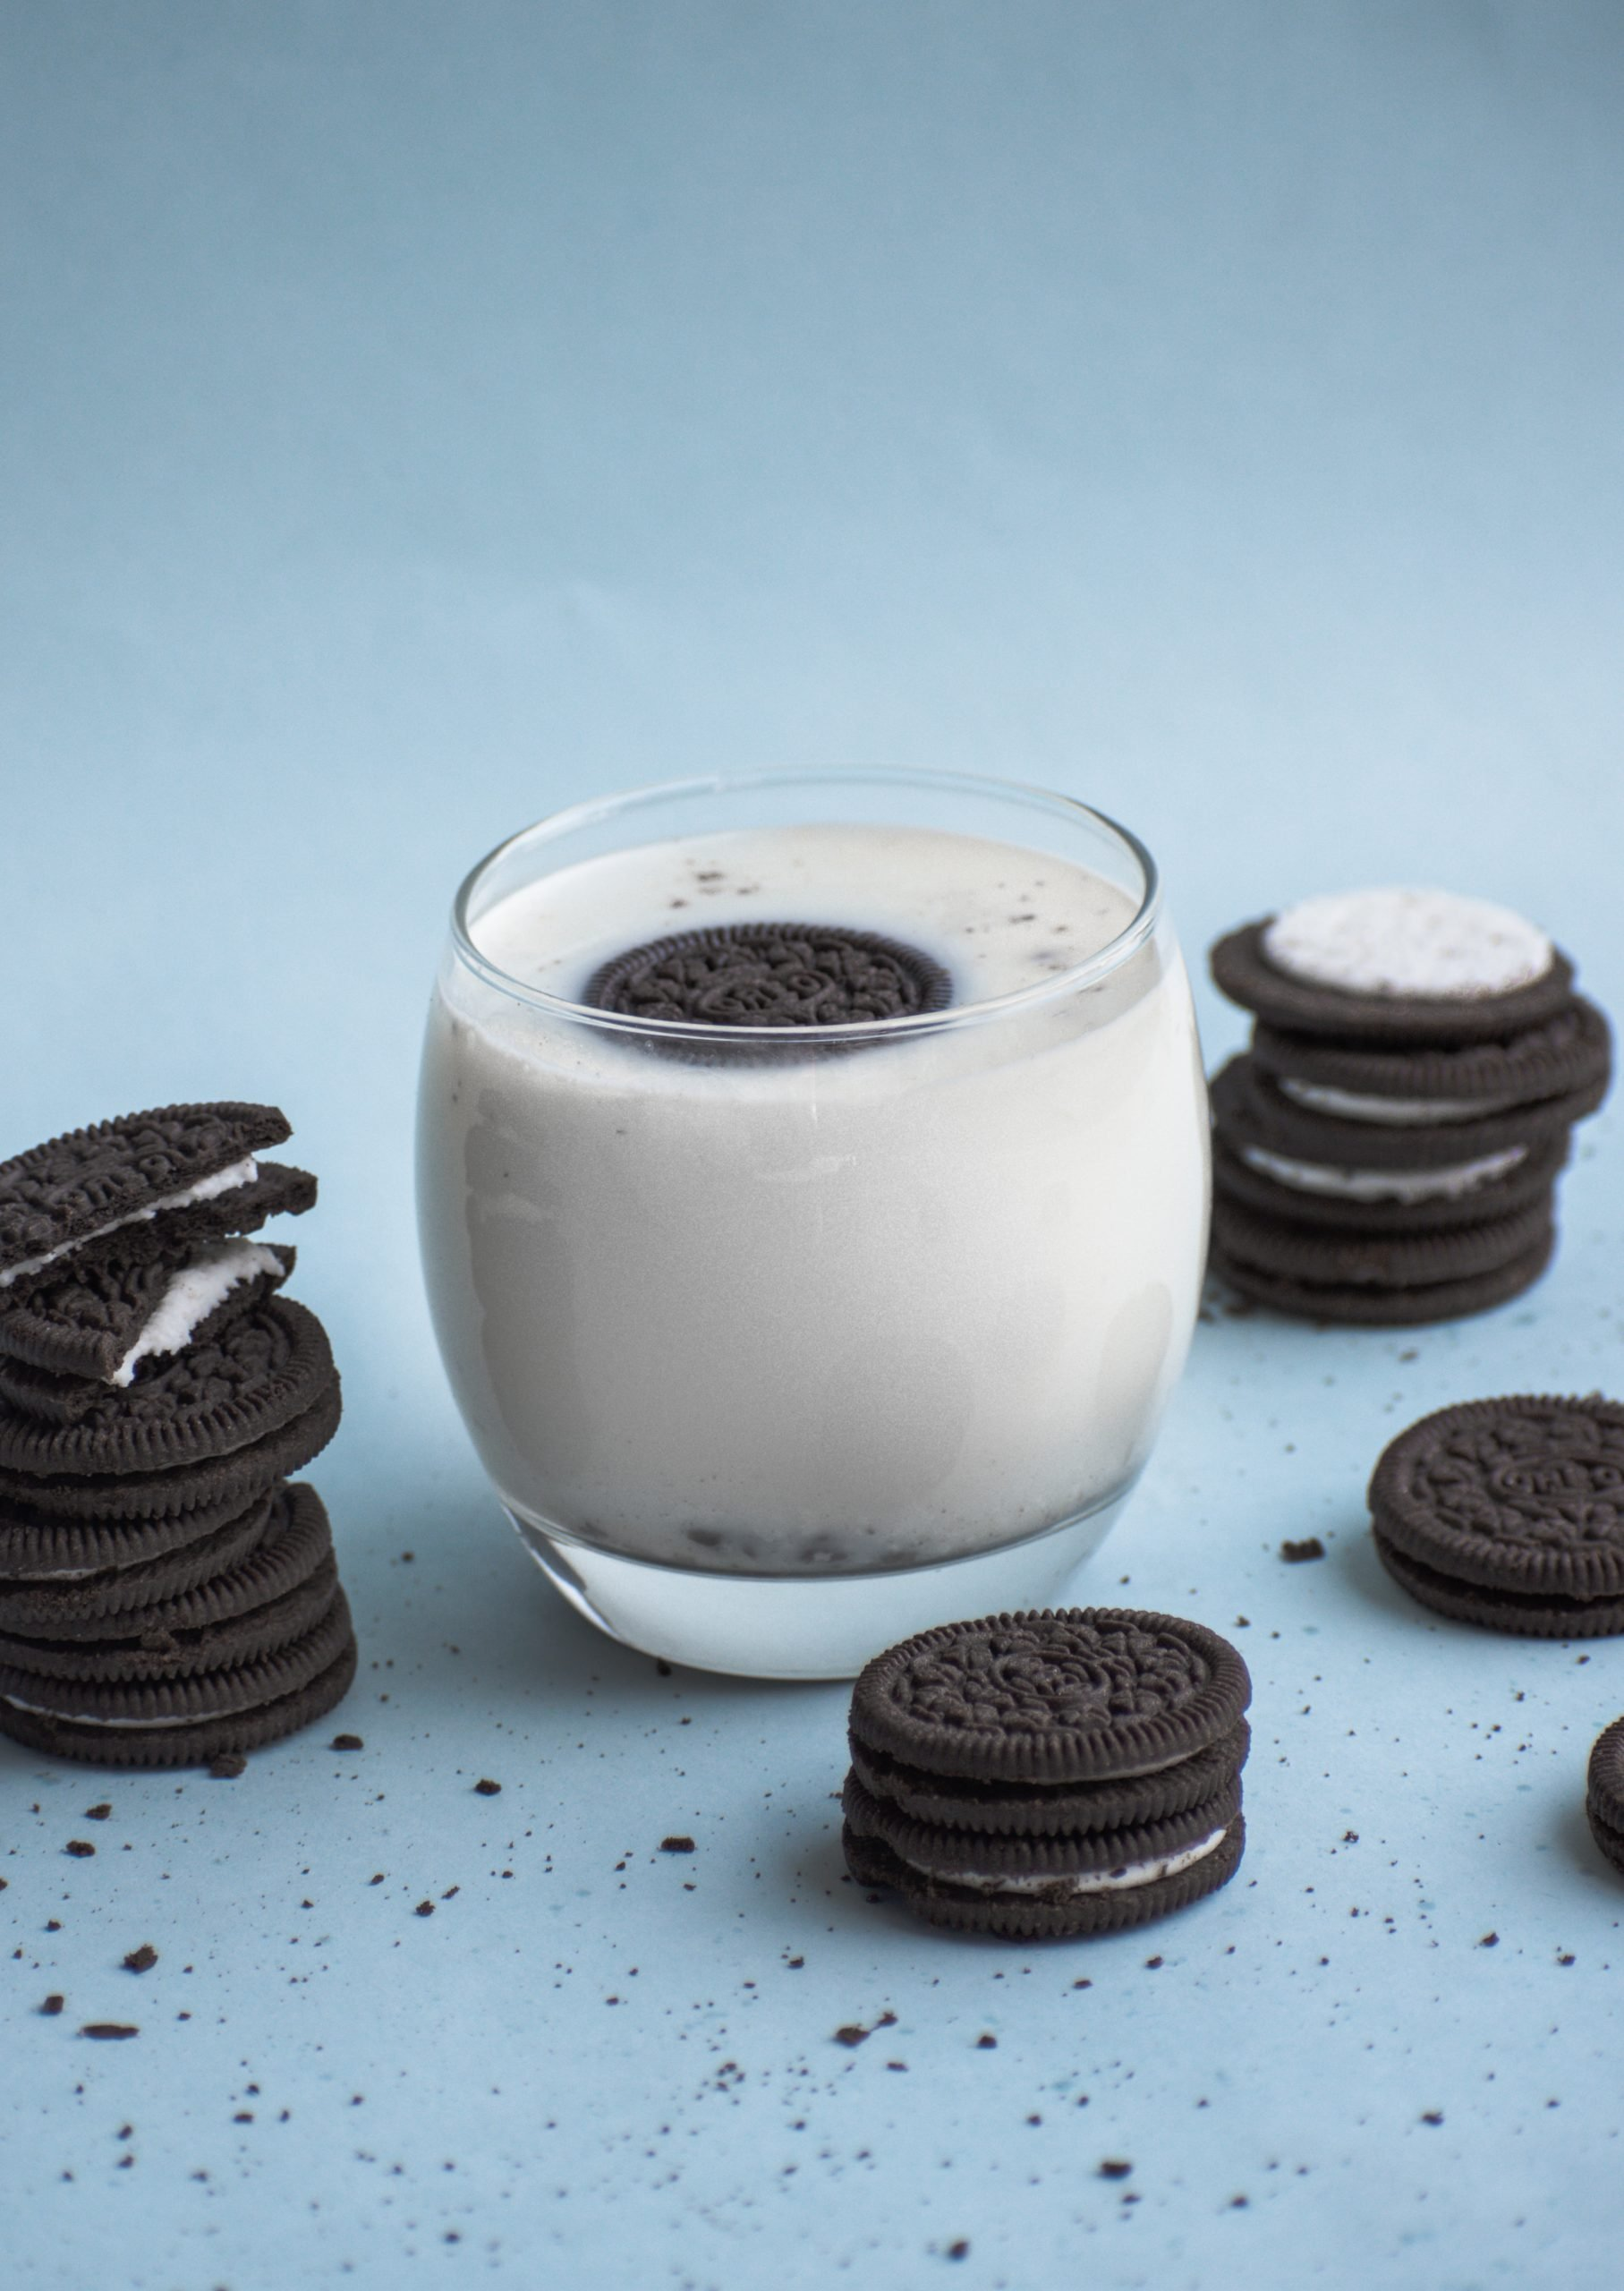 Milk and Oreo biscuits